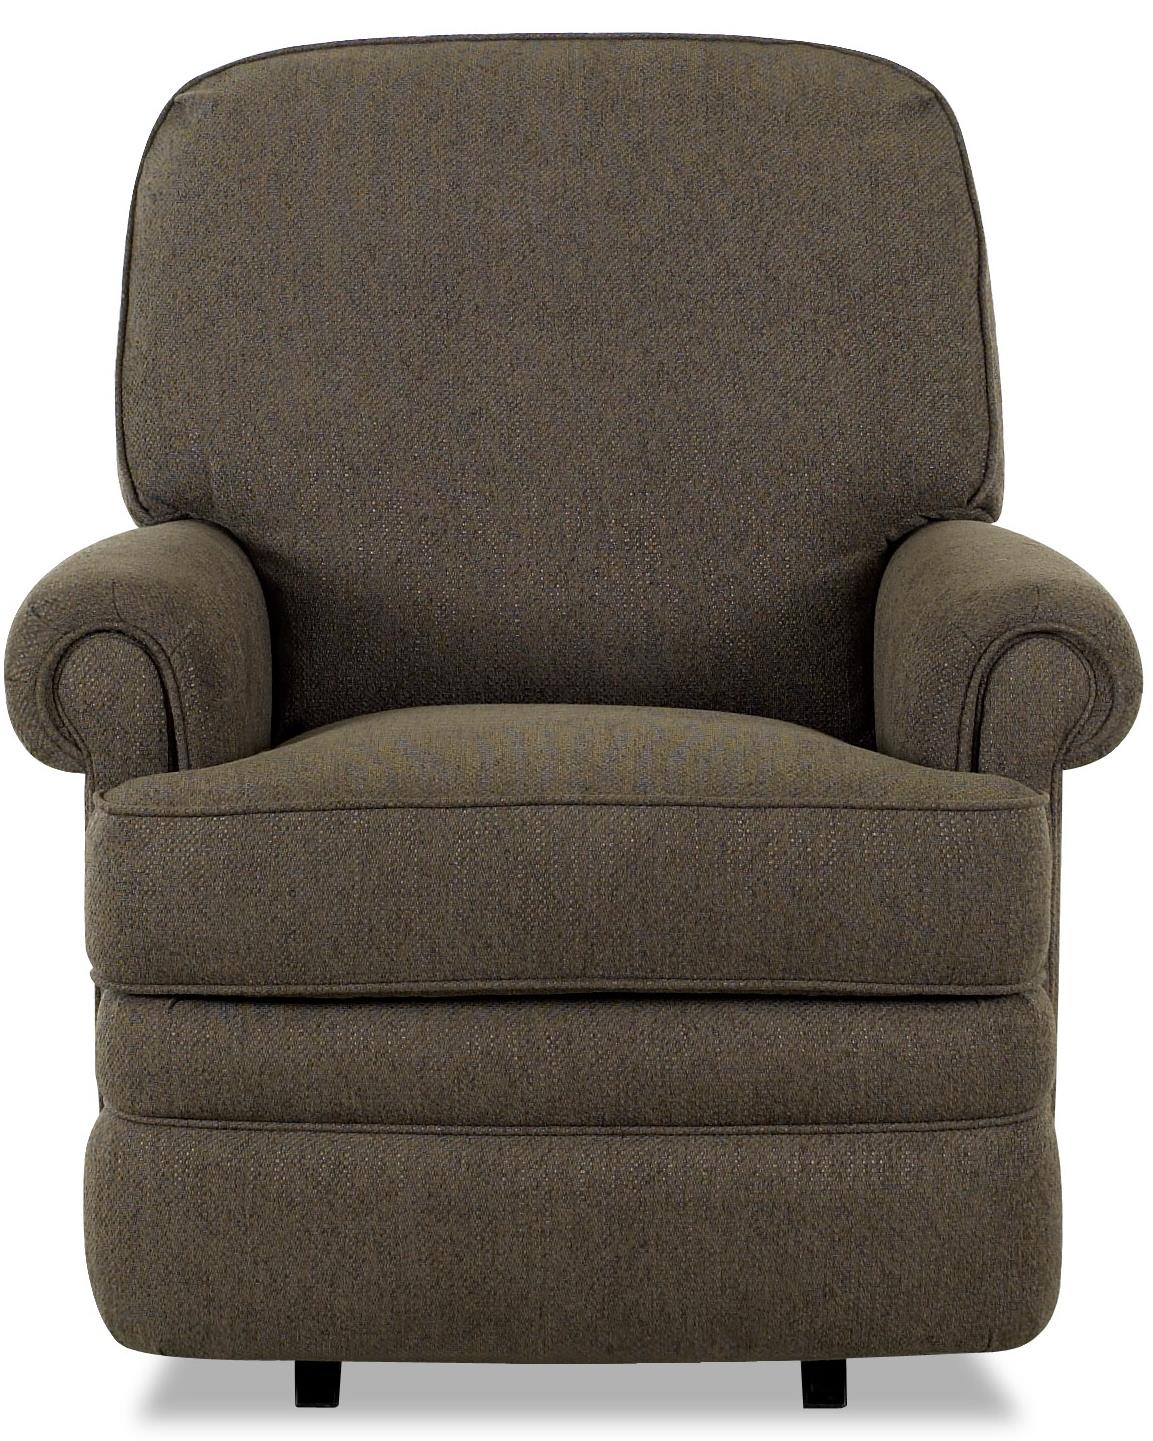 Sutton Place Recliner by Comfort Design at Stuckey Furniture